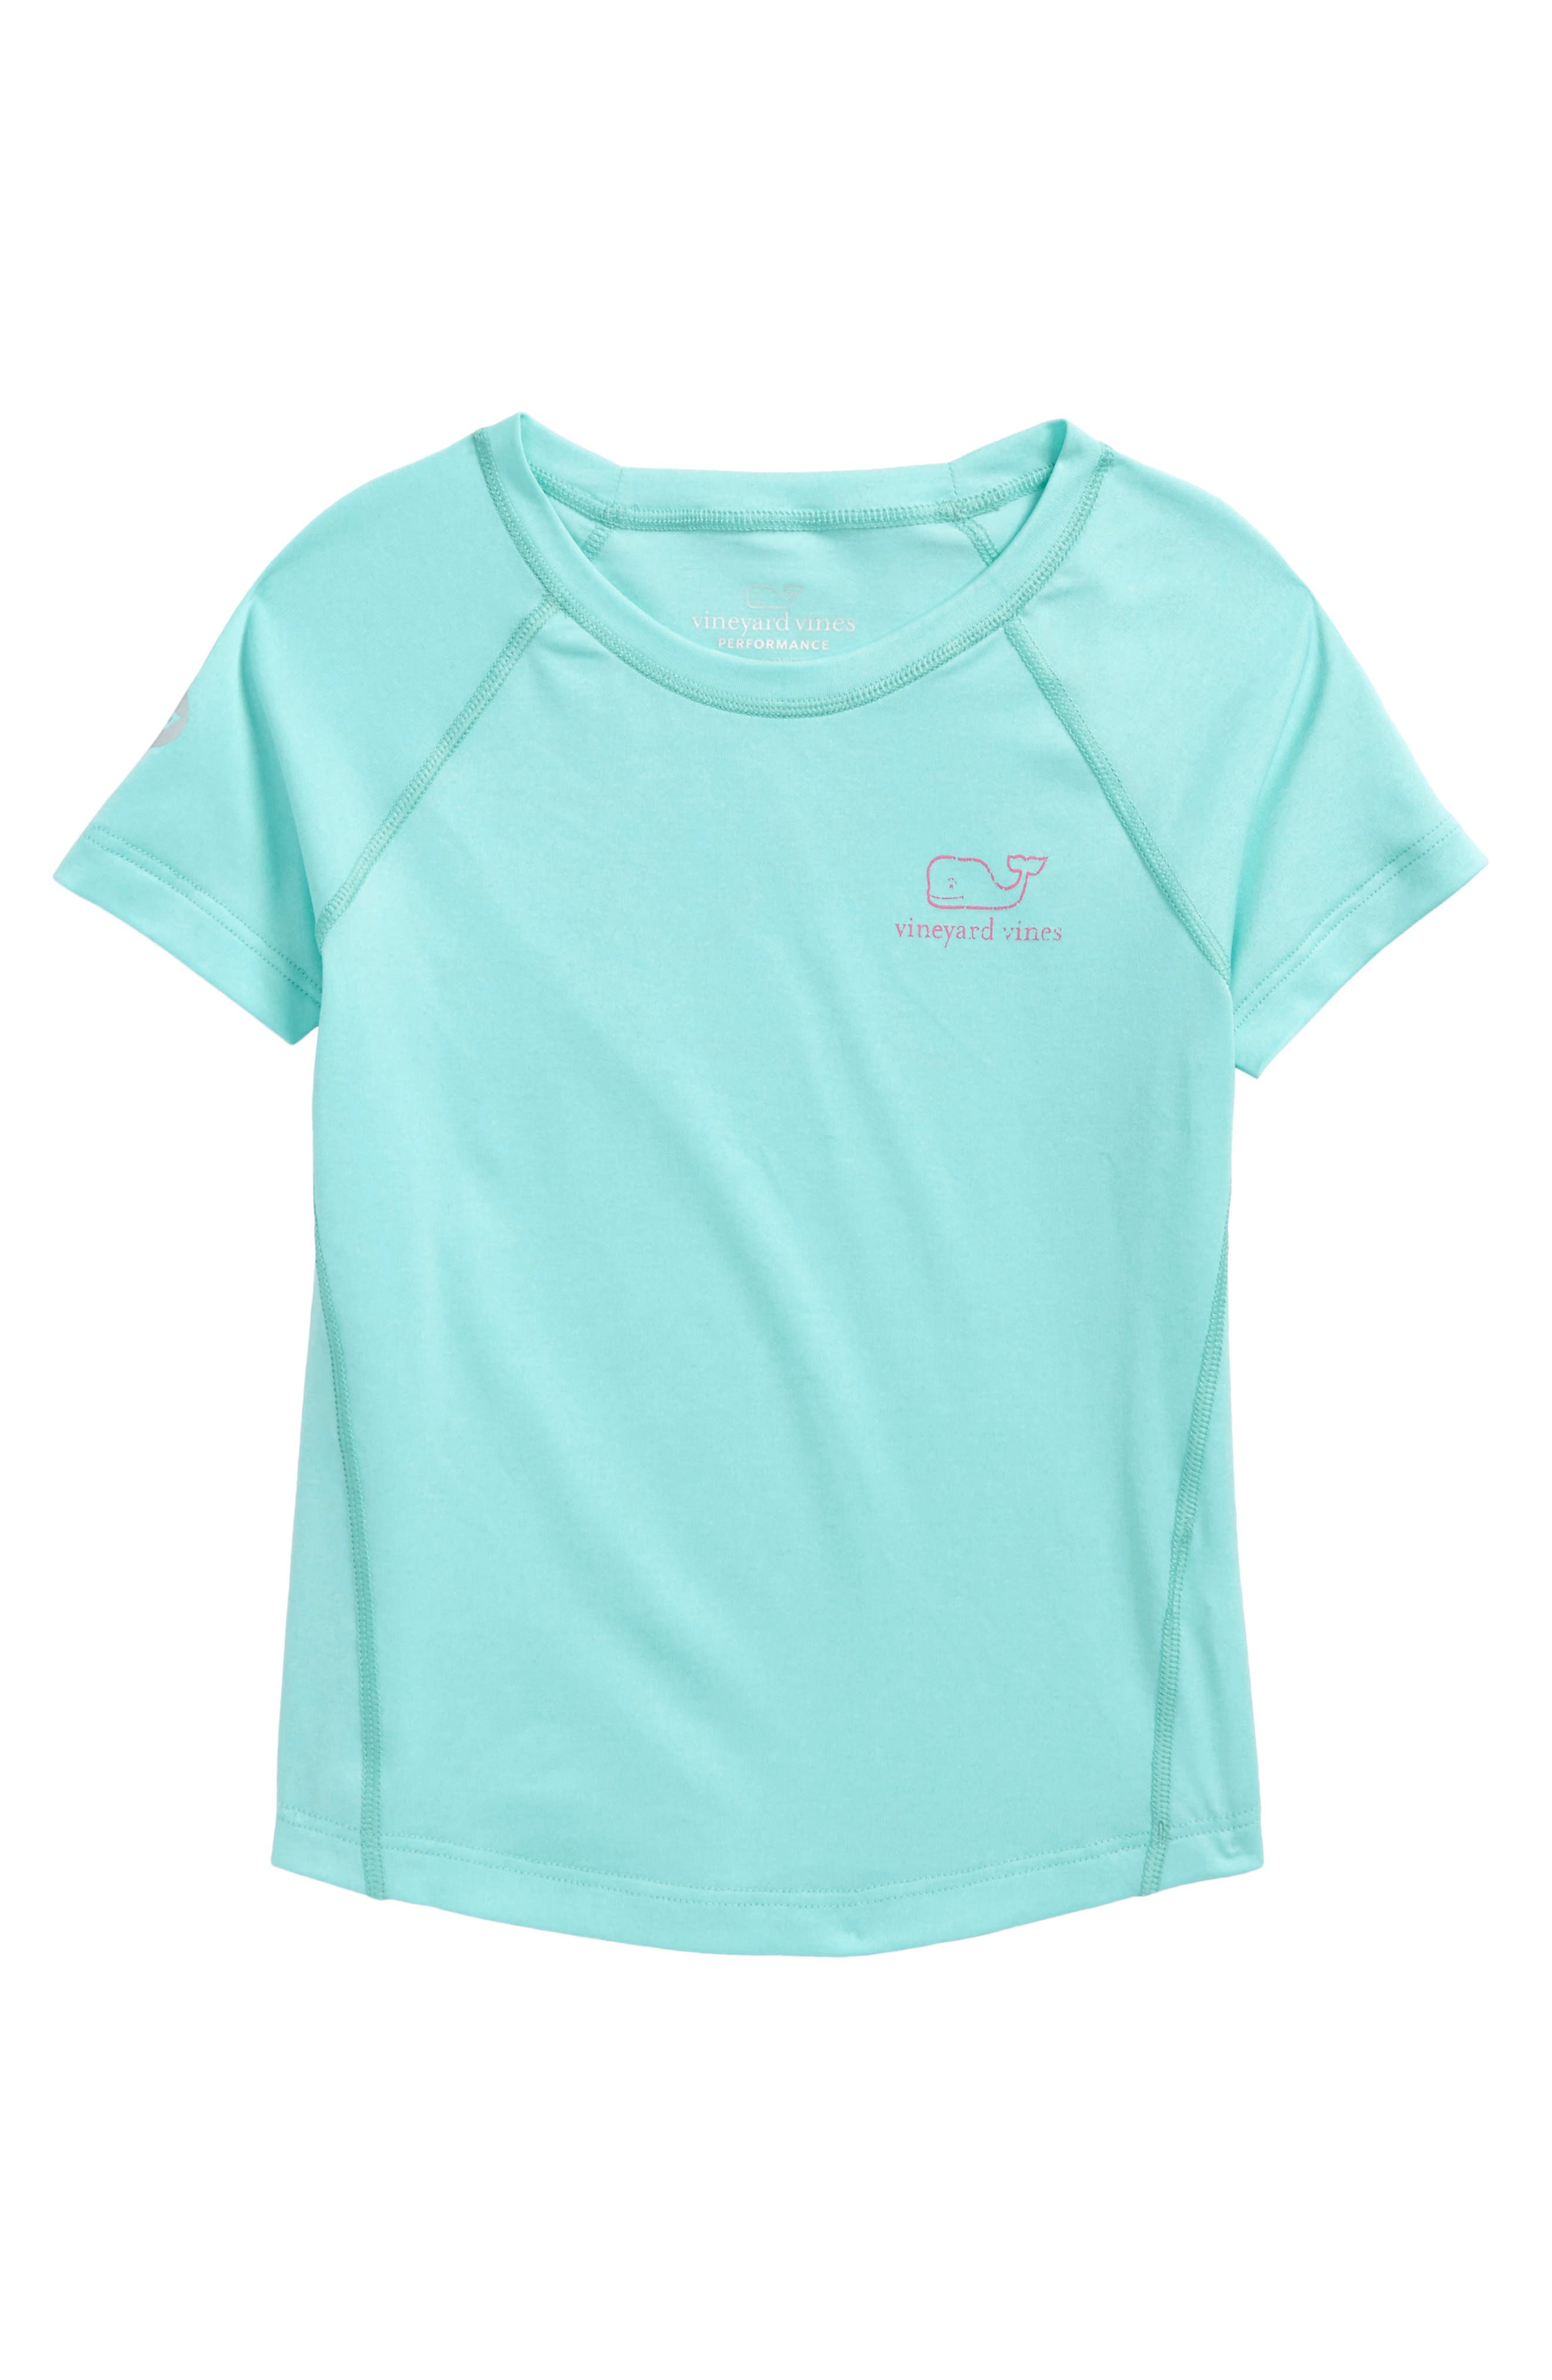 Main Image - vineyard vines Vintage Whale Performance Tee (Toddler Girls)